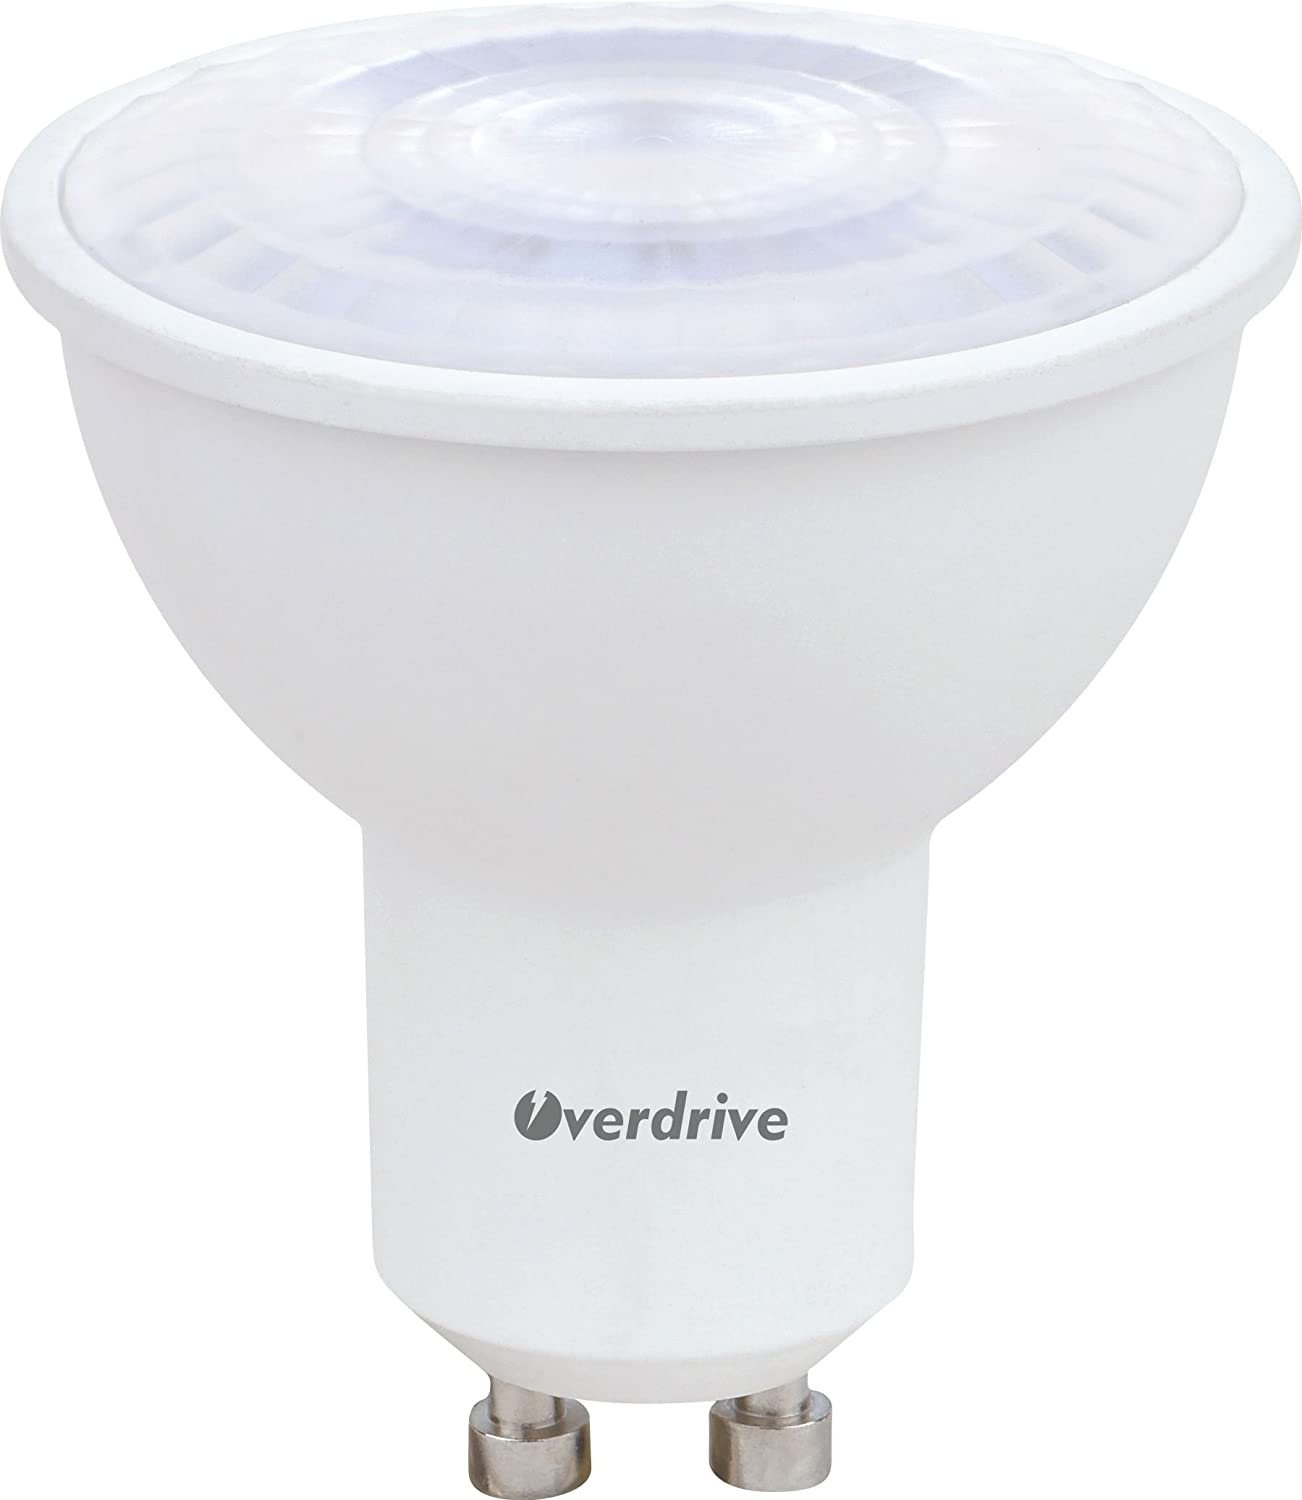 Overdrive 647 (12-Pack) 50 -Watts Equivalent Halogen MR16, LED MR16 Lamp, 120V AC, GU10, Soft White, Dimmable, Energy Star Qualified - - Amazon.com